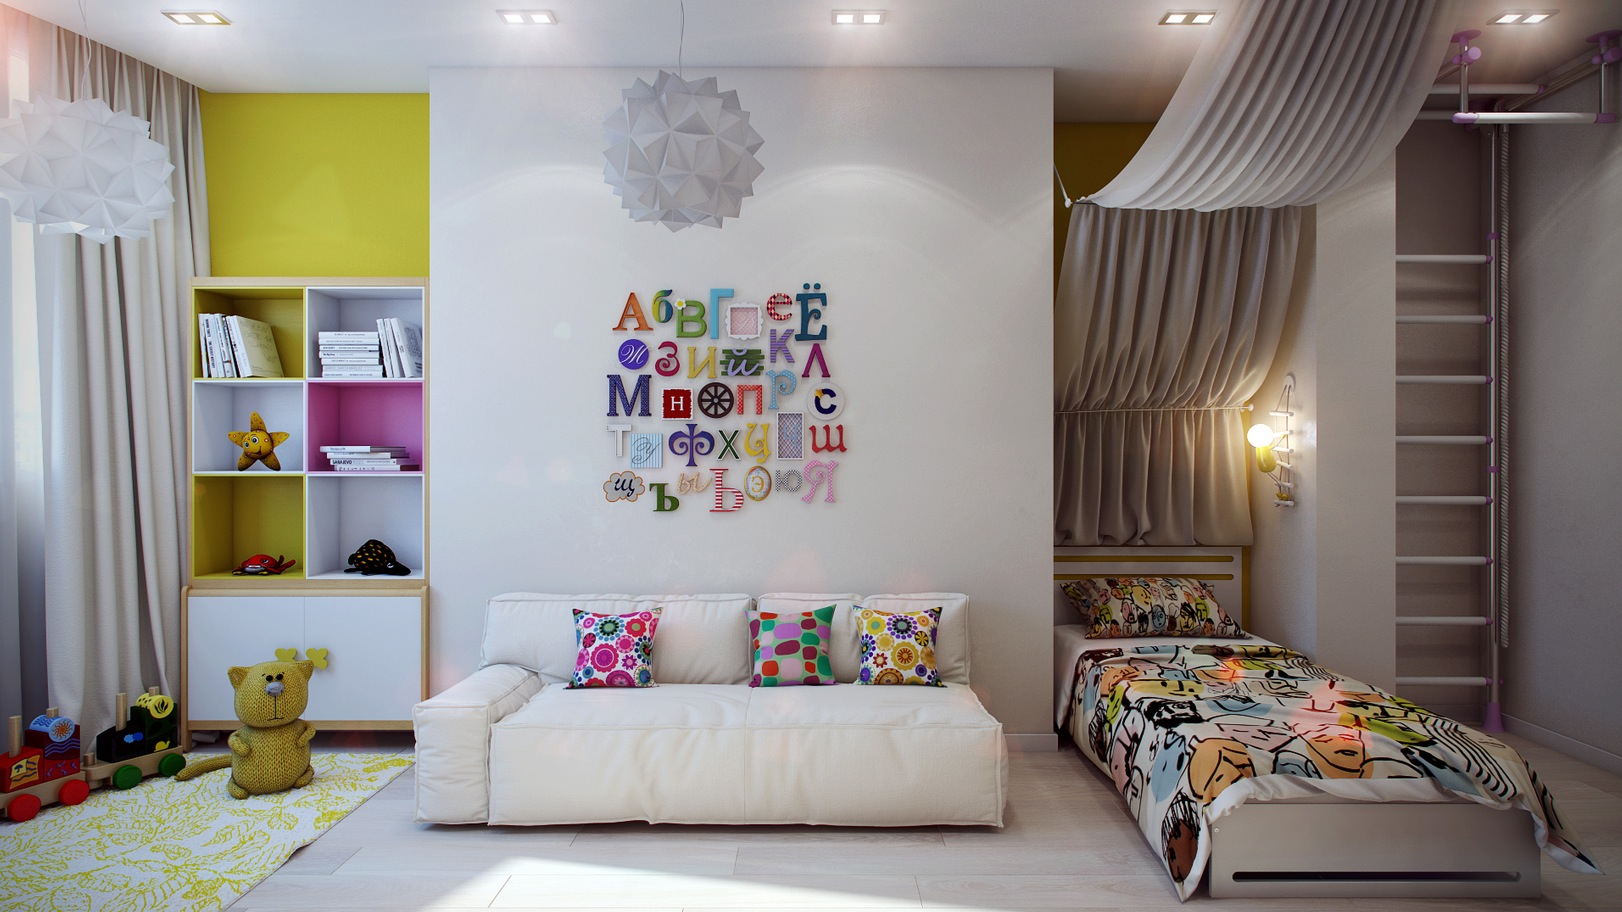 Wall Decor Childrens Rooms : Casting color over kids rooms